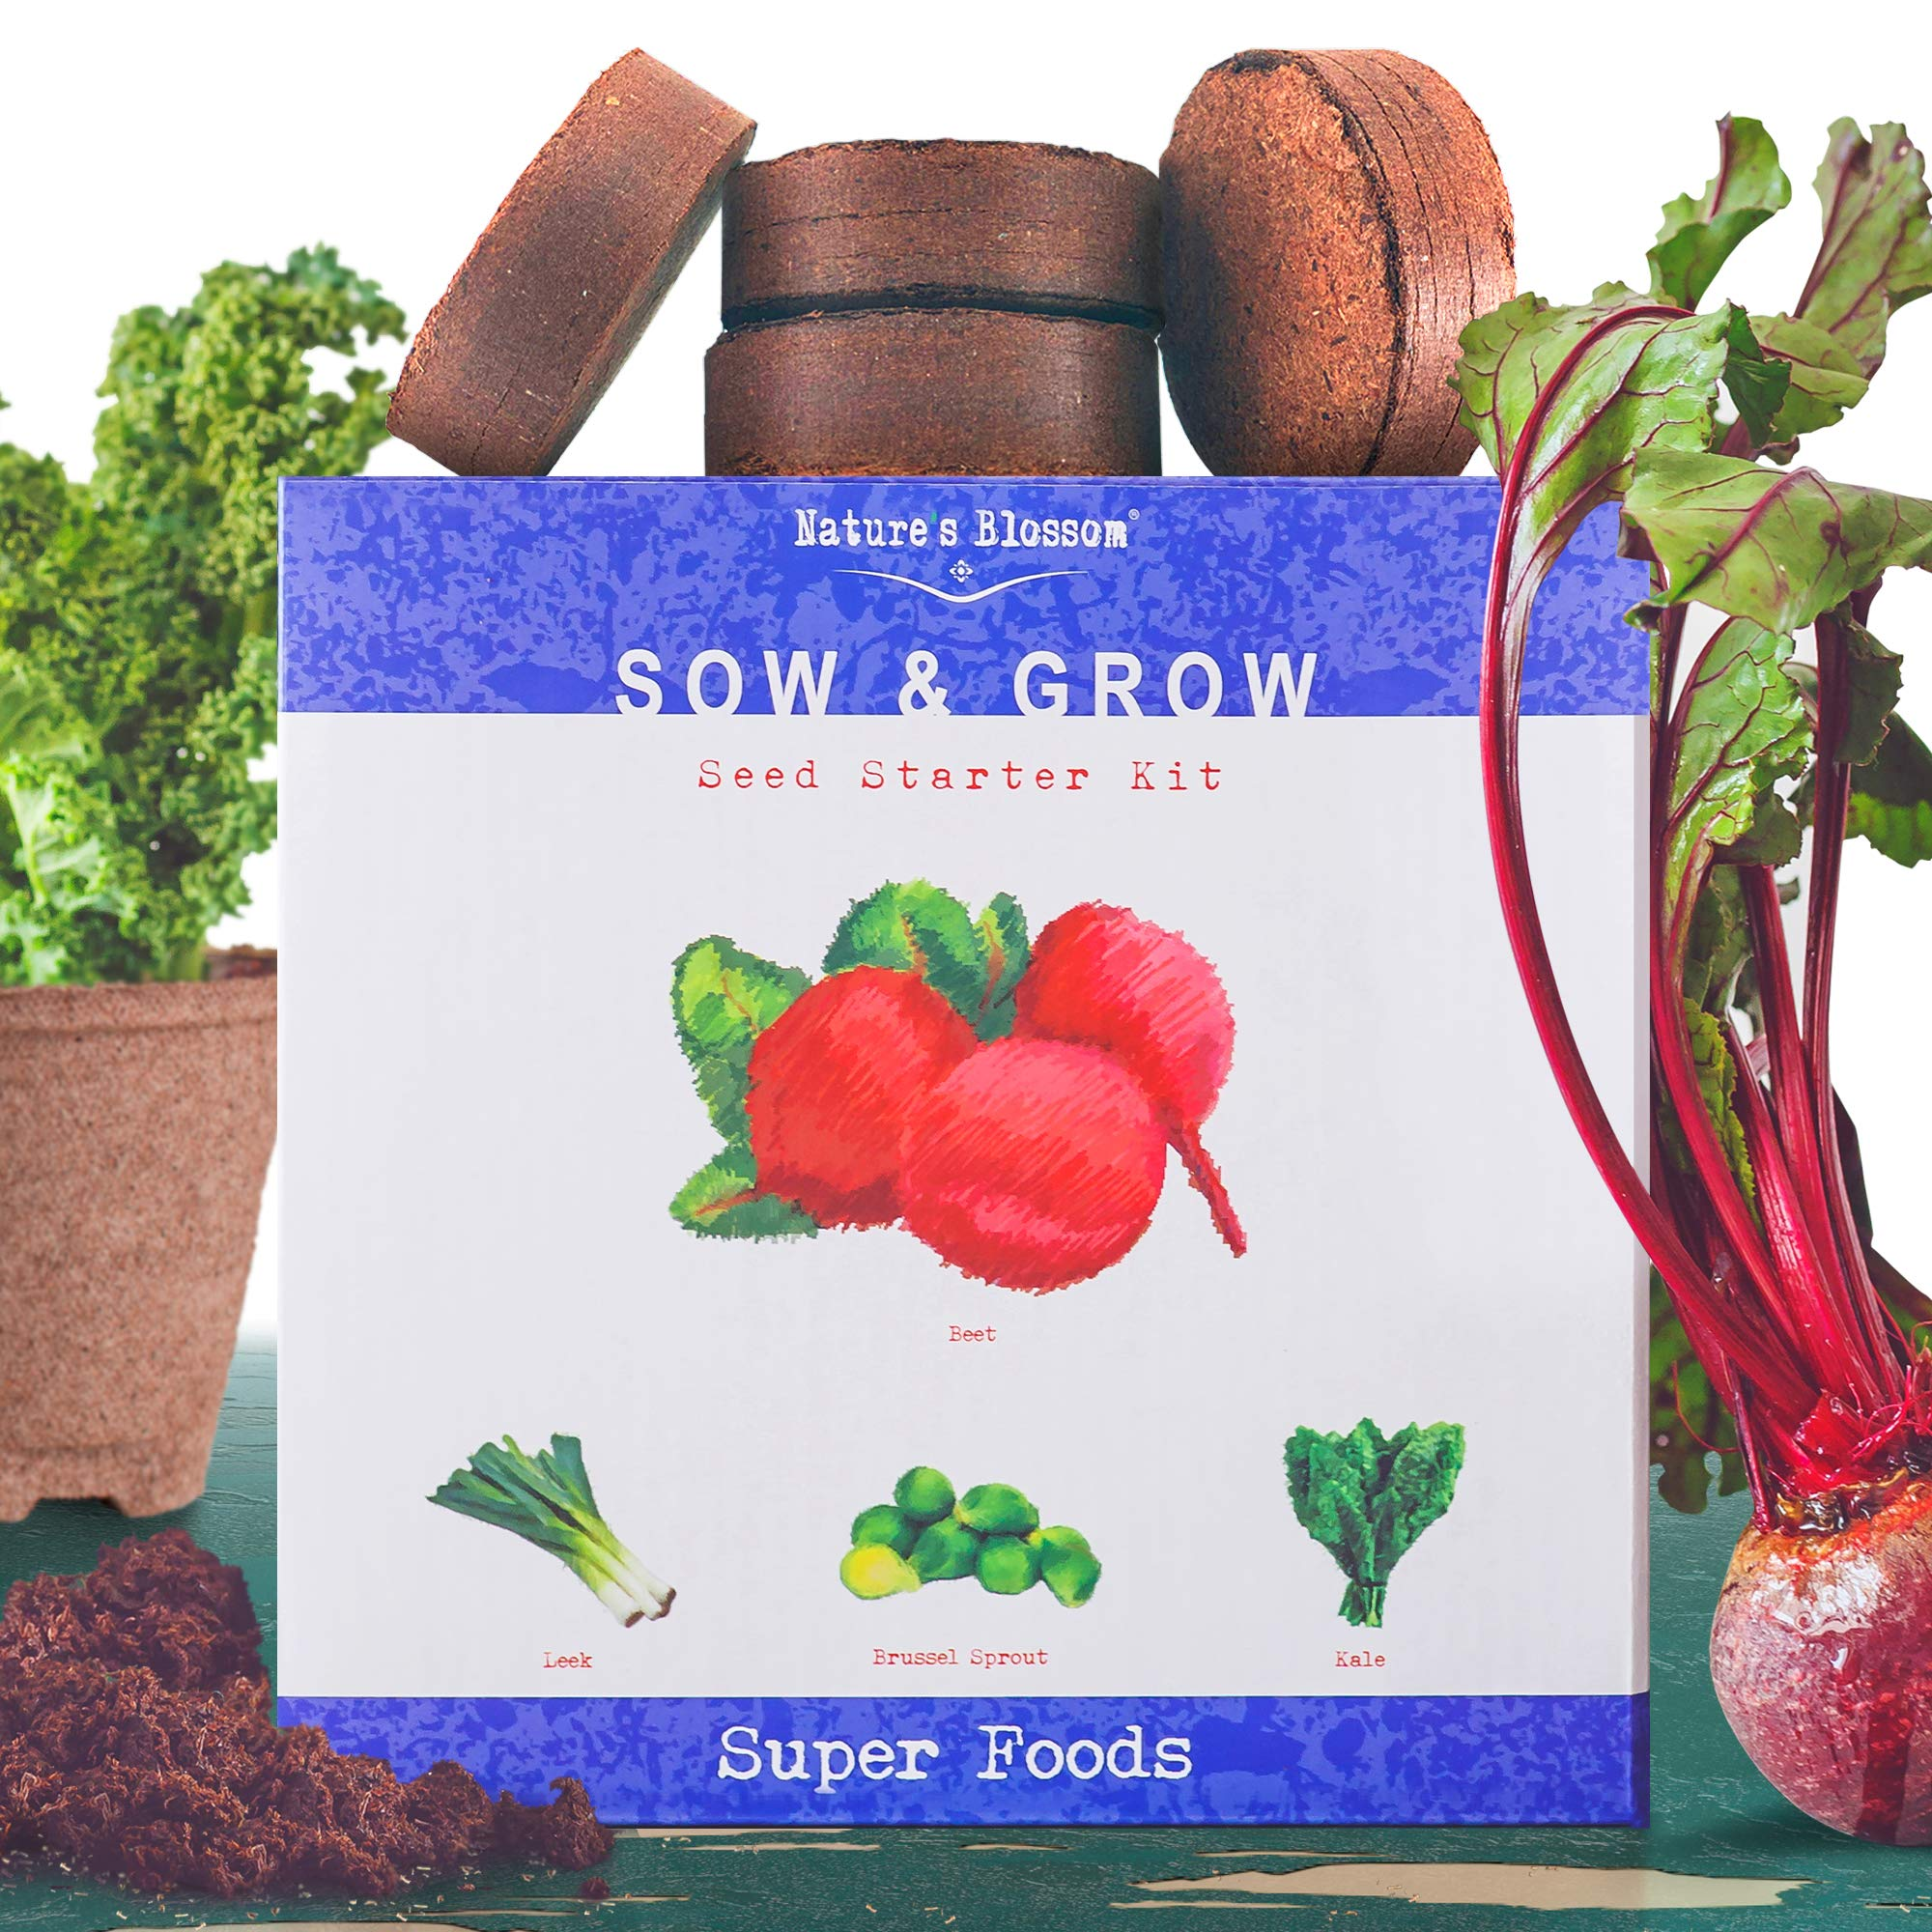 Grow 4 of The Healthiest Vegetables from Seed - Brussel Sprouts, Kale, Beets & Leeks. Superfood Sprout Kit W/Soil, Organic Planters. Outdoor Garden Gift for Beginner Gardeners, Vegans, Vegetarians